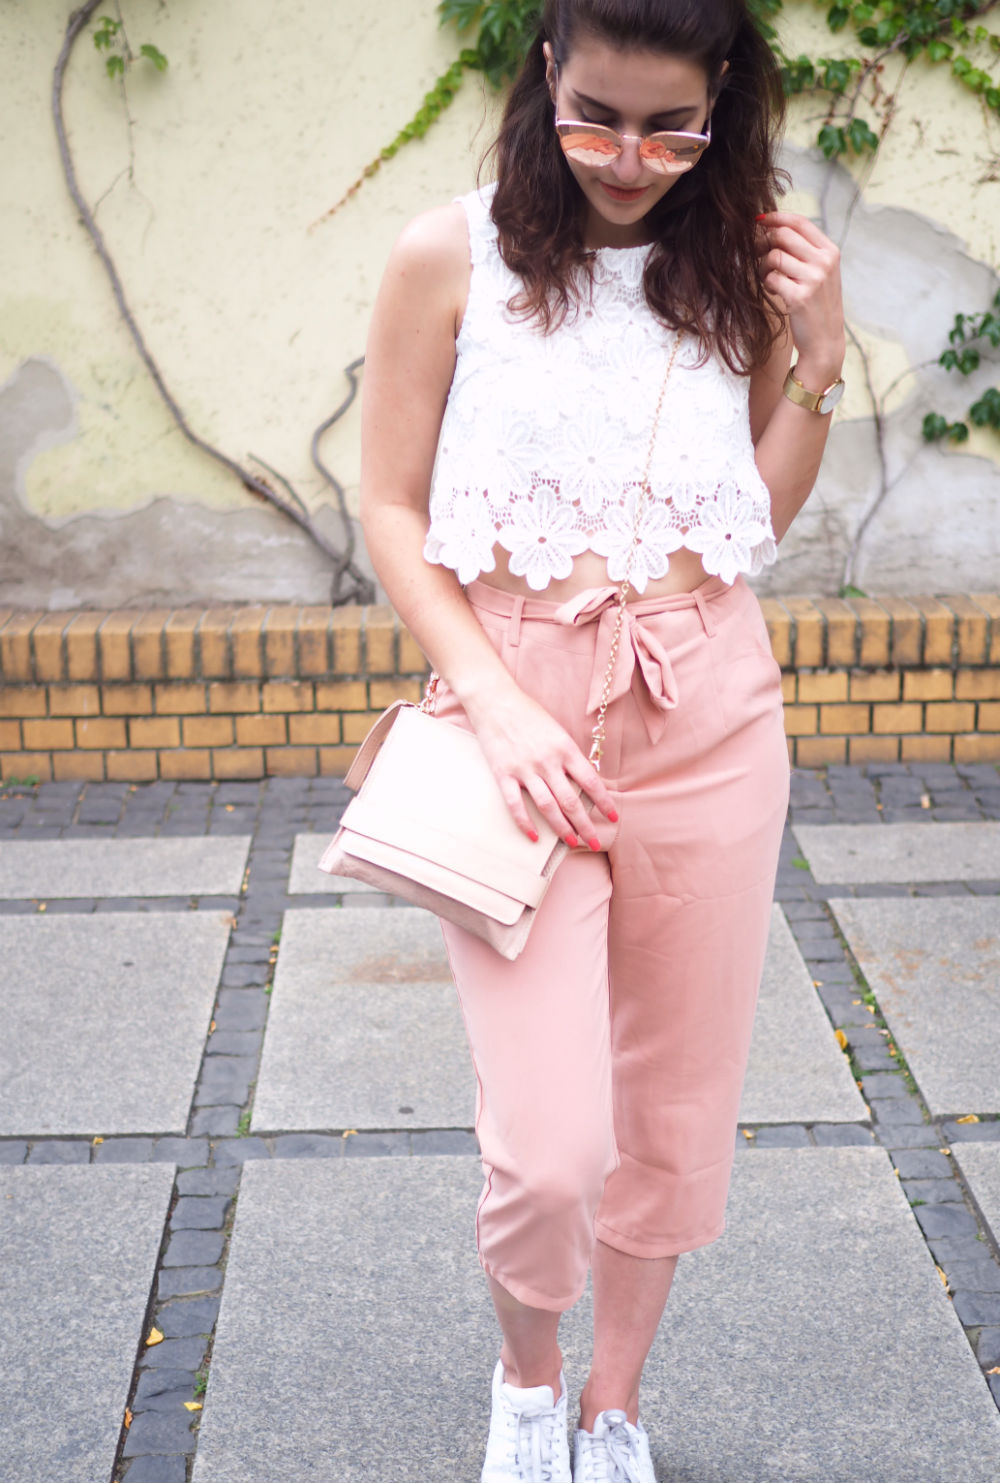 blush culottes adidas superstars streetstyle oasis cluse watch summer look berlin fashion week quay all my love